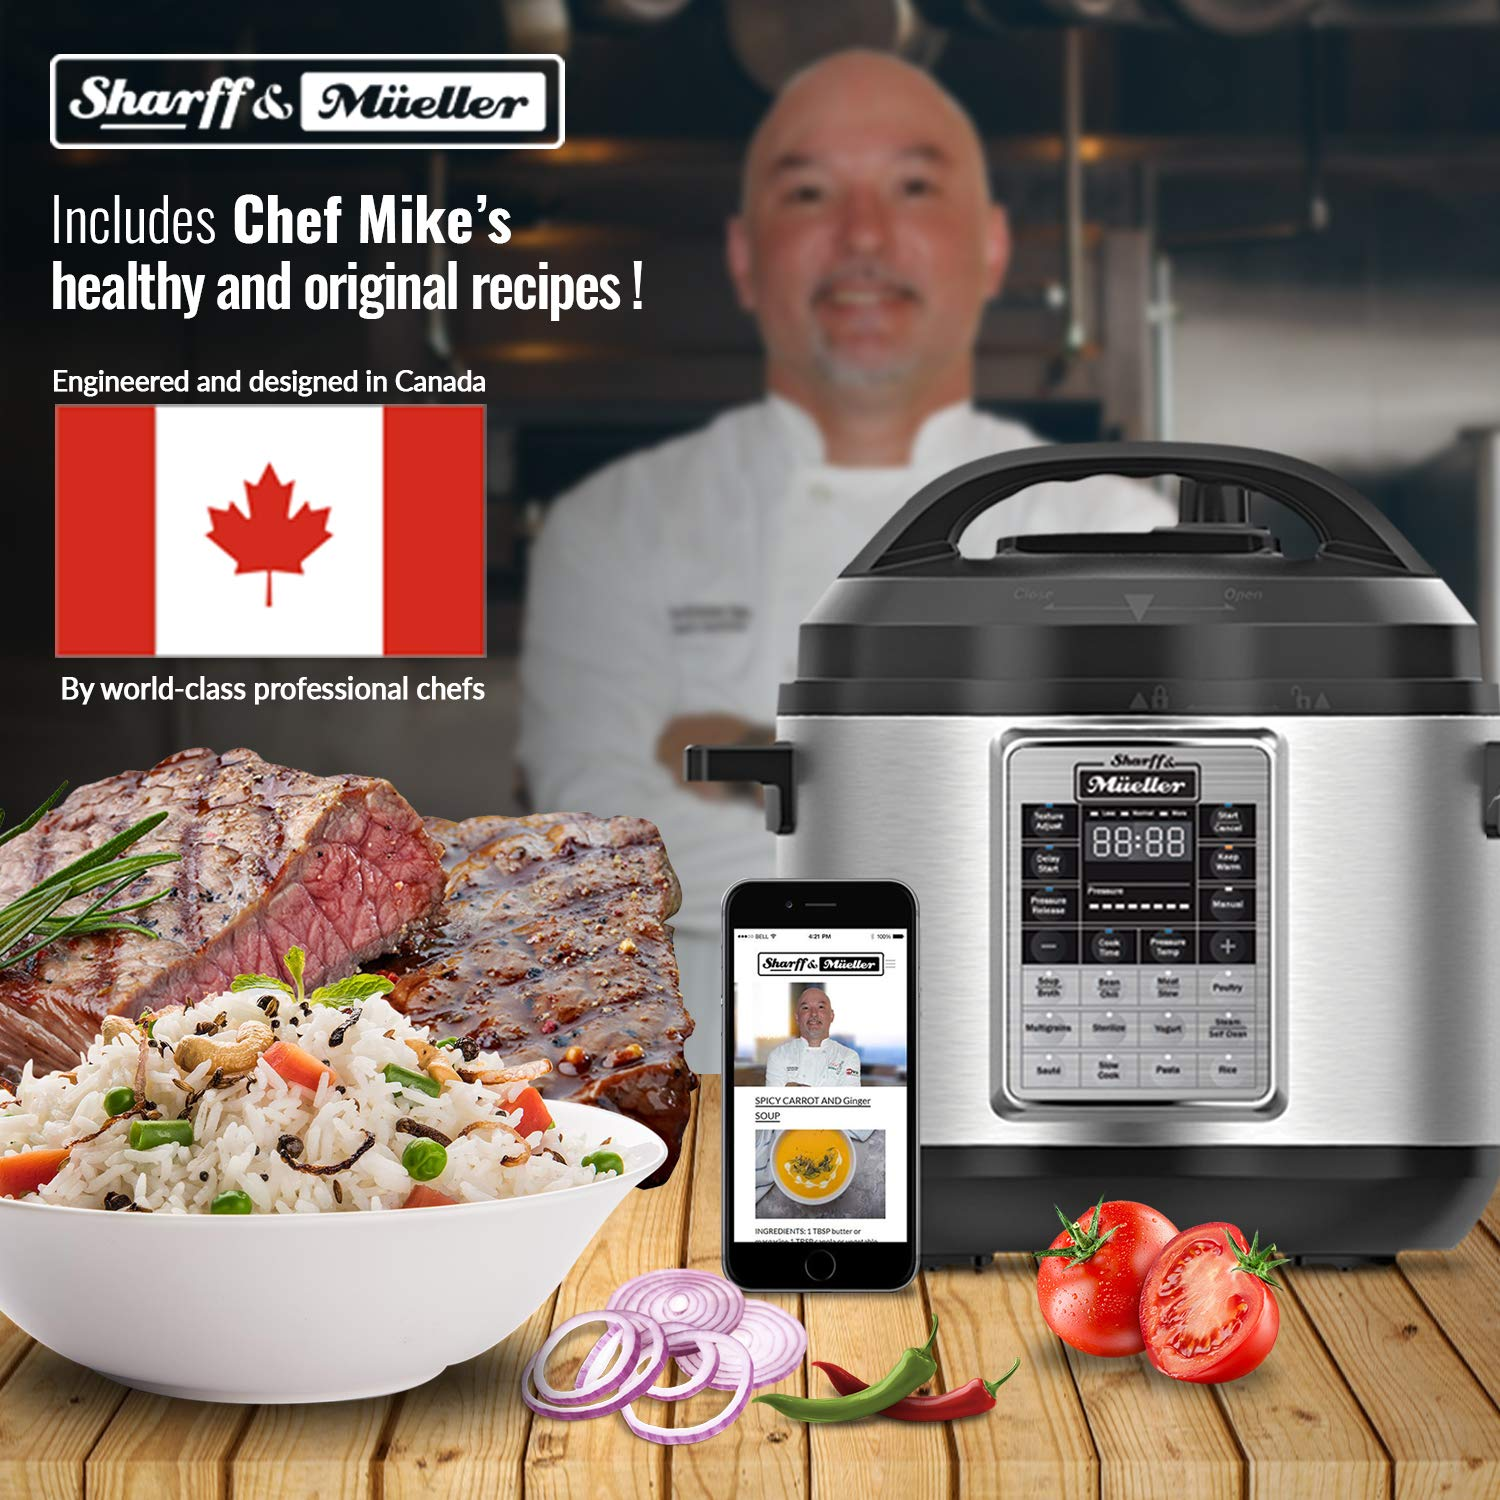 Electric Pressure Cooker 6 Quart Stainless Steel 12 in 1 Programmable Multipot Cooker Duopro RecipeBook Included by Sharff and Mueller by Sharff & Müeller (Image #7)